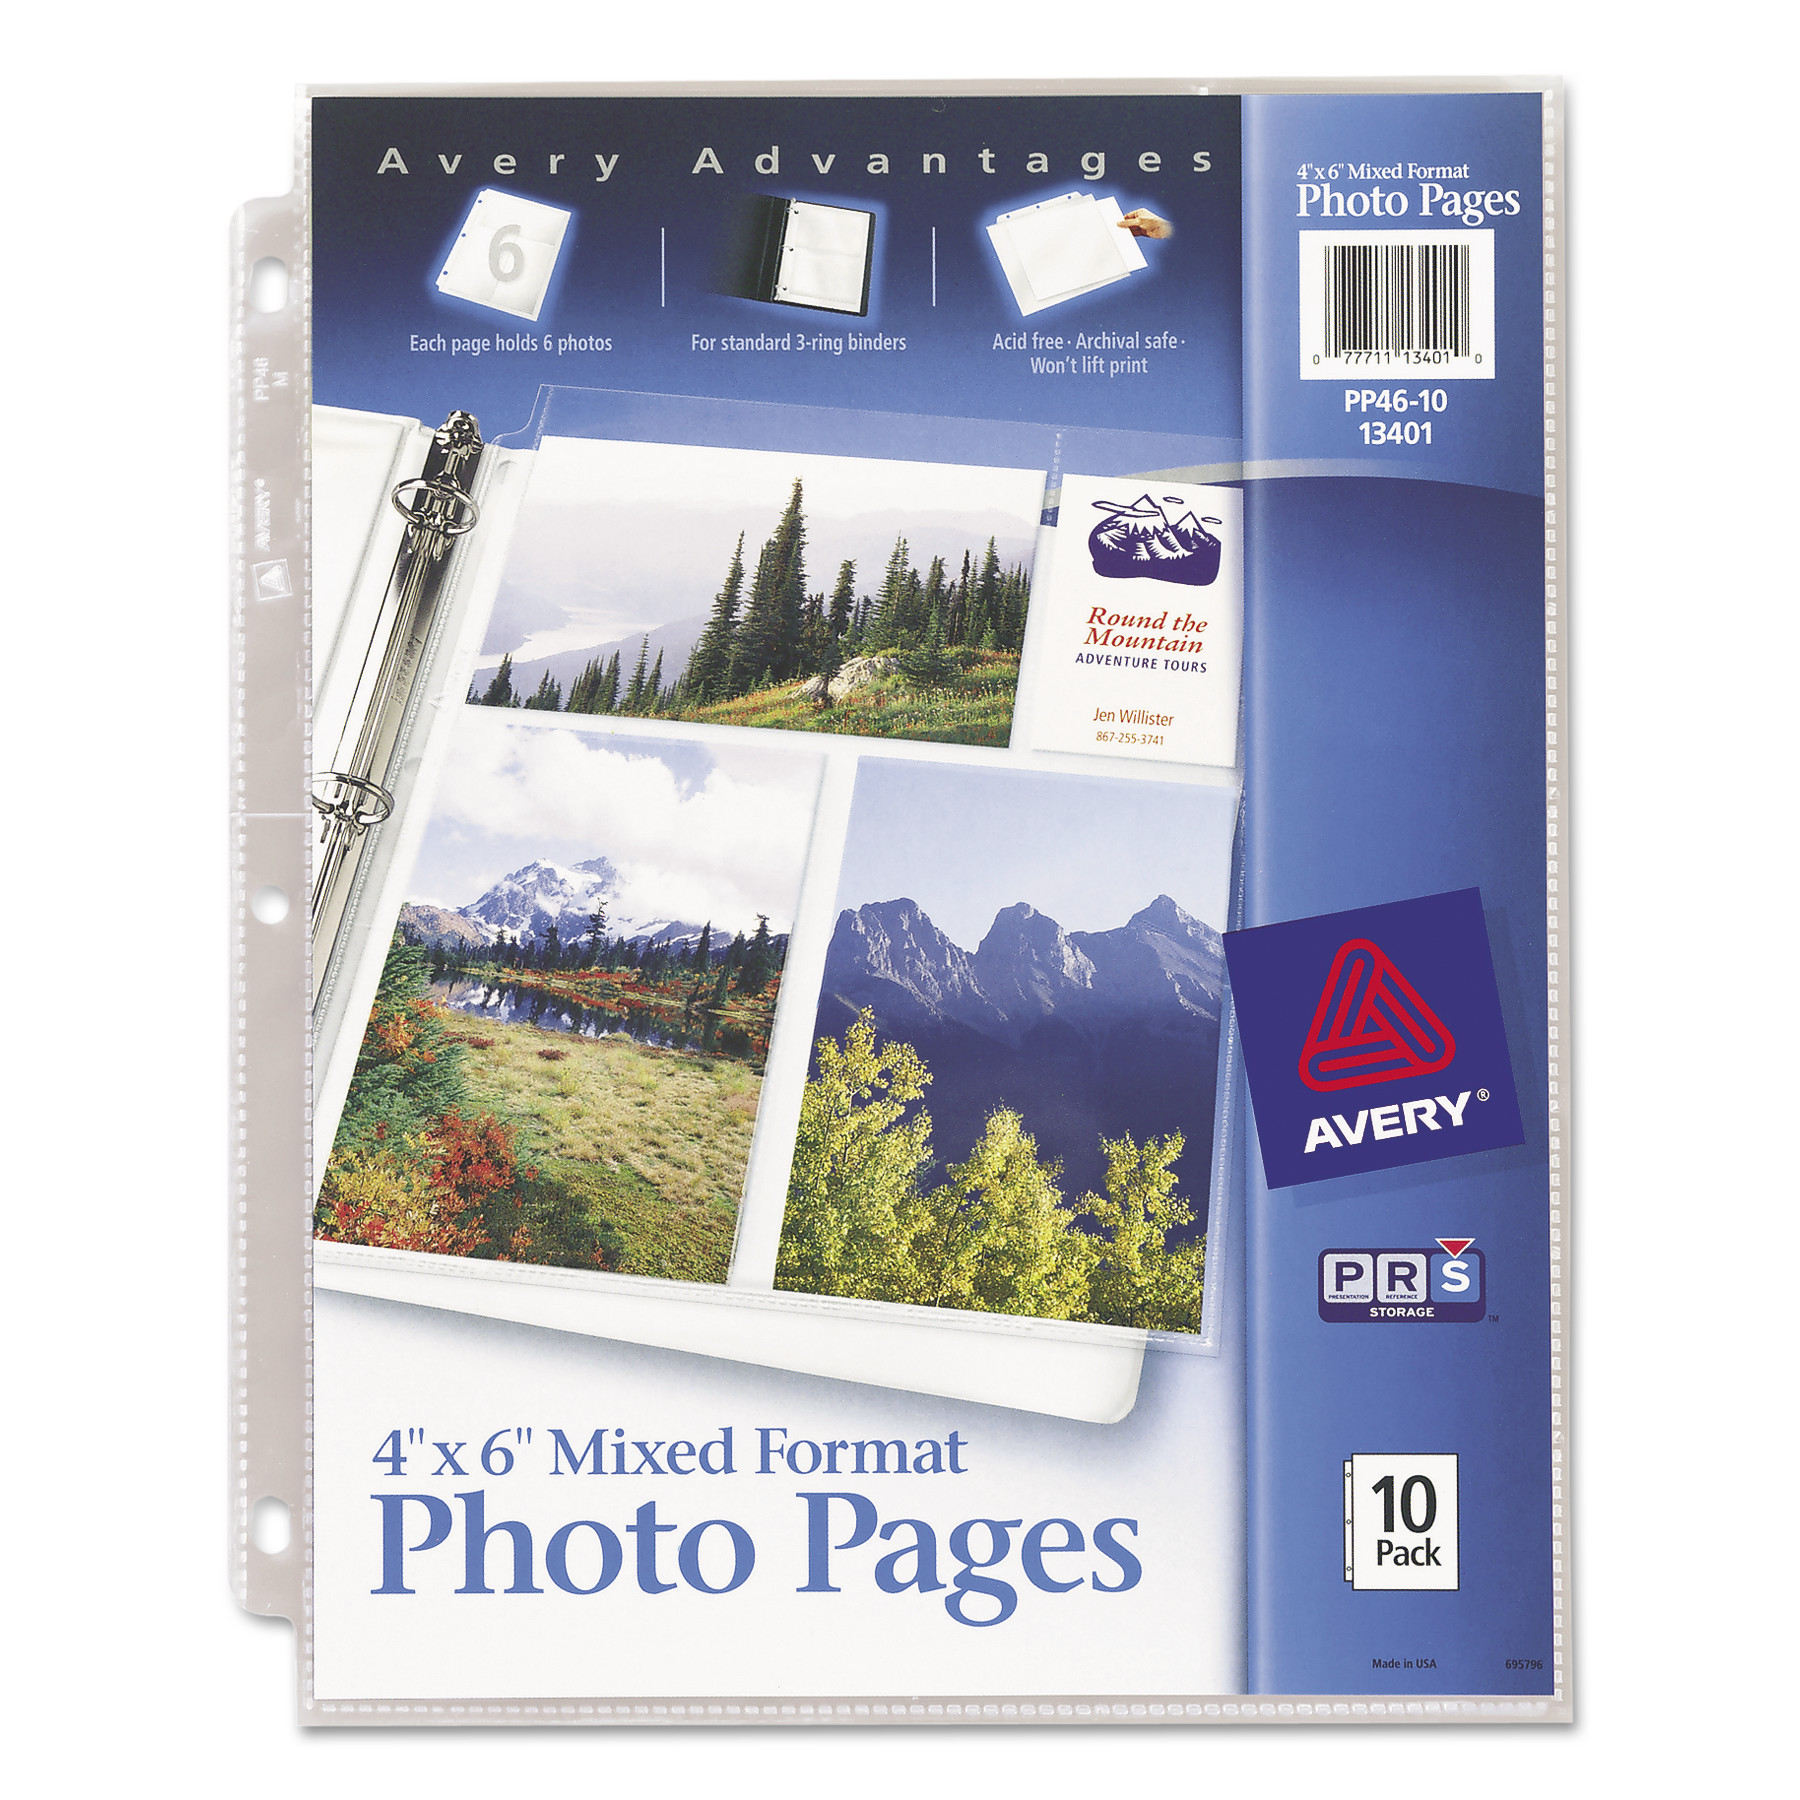 "Avery(R) 4"" x 6"" Mixed Format Photo Pages 13401, Acid Free, Pack of 10"